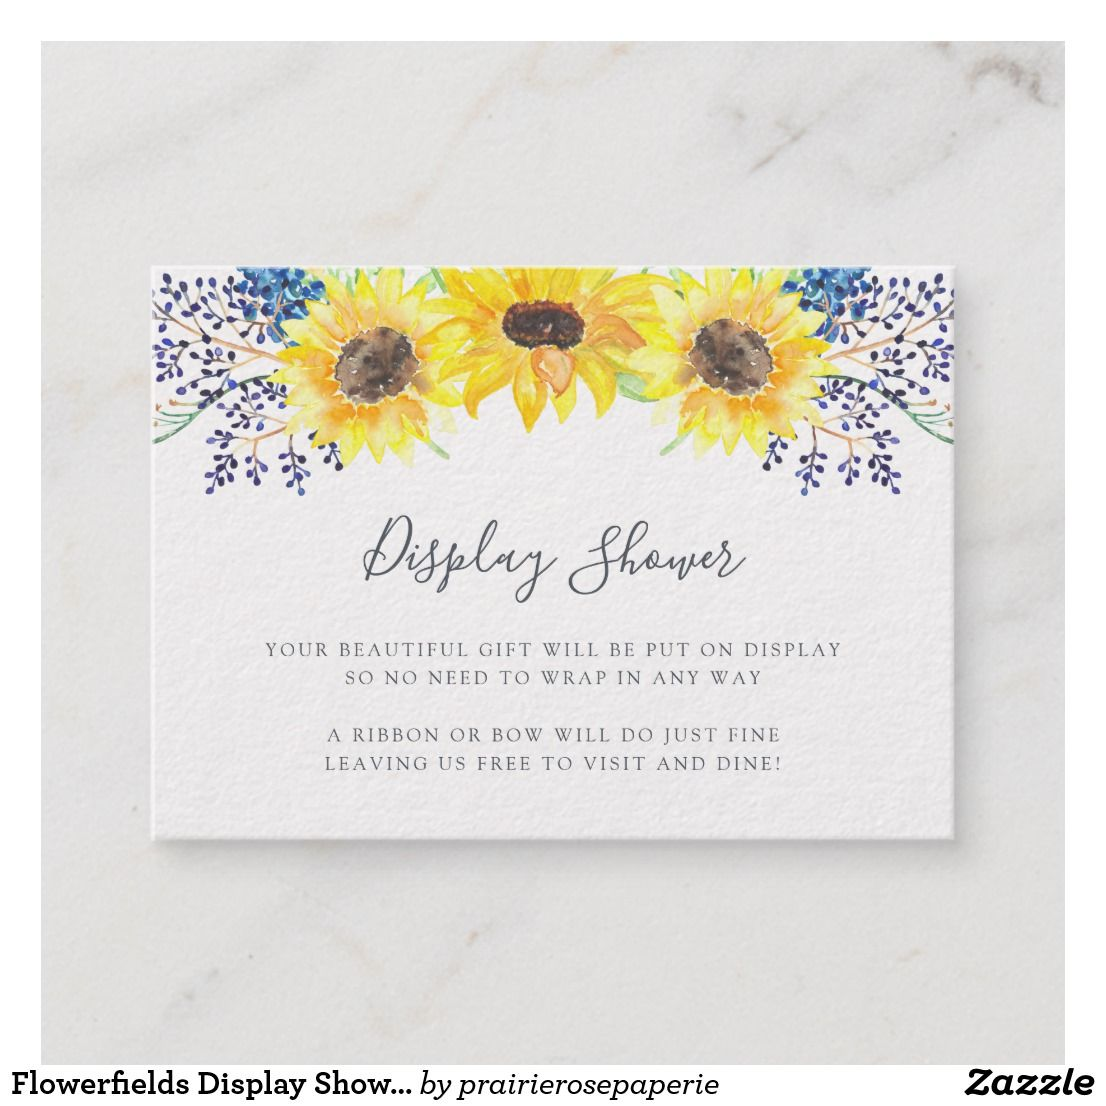 baee597b6797 Flowerfields Display Shower Card Slip these petite cards into your baby  shower or bridal shower invitations when requesting that guests bring their  gifts ...